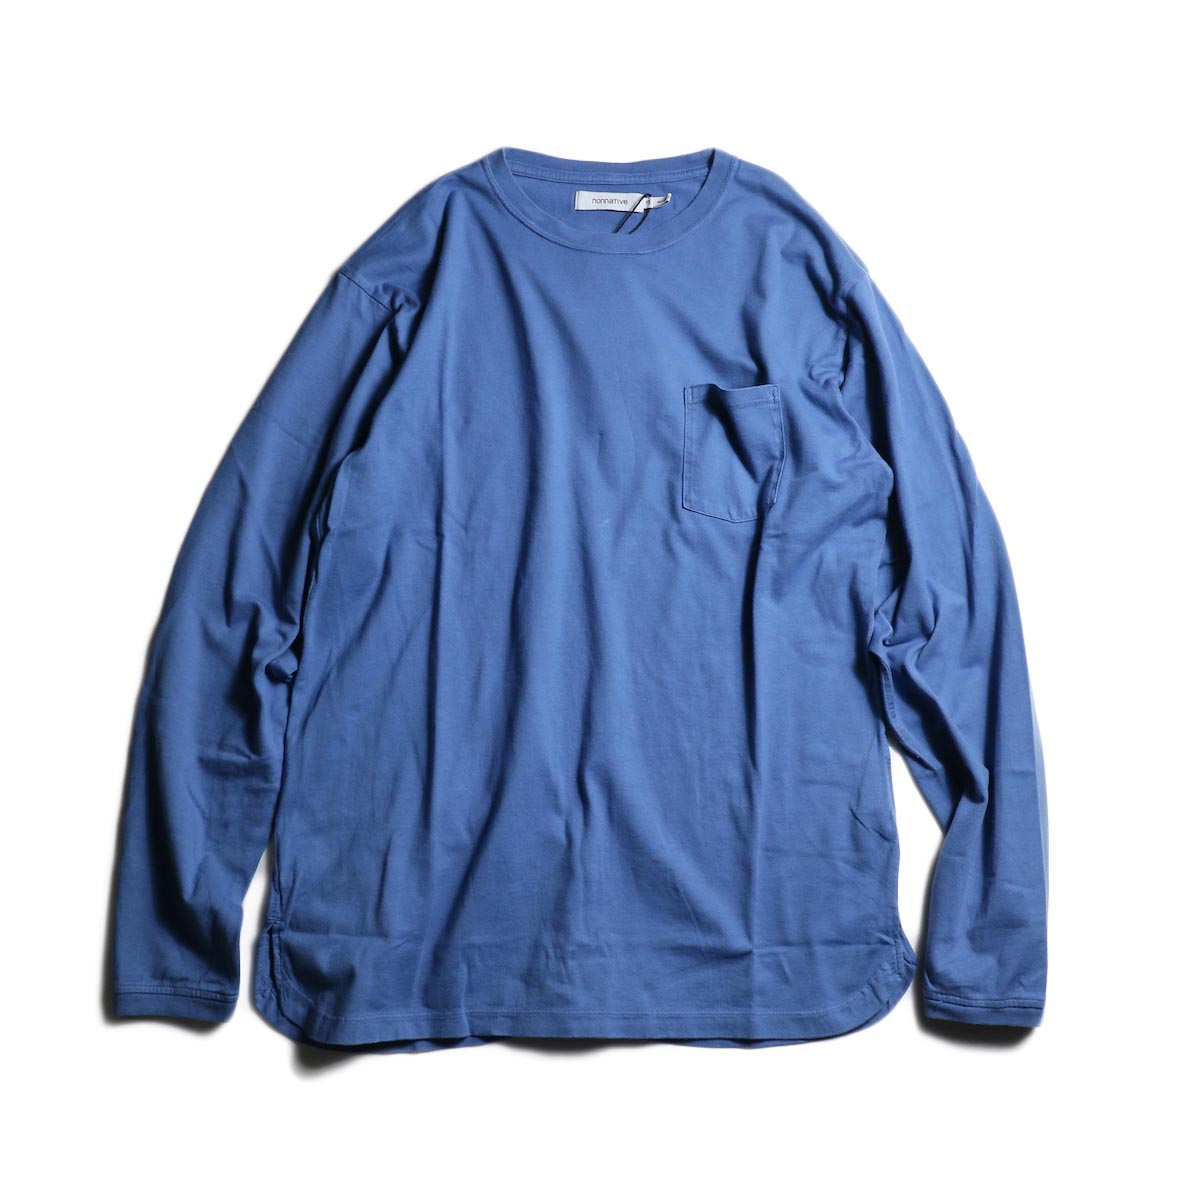 nonnative / DWELLER L/S TEE COTTON JERSEY OVERDYED (Blue)